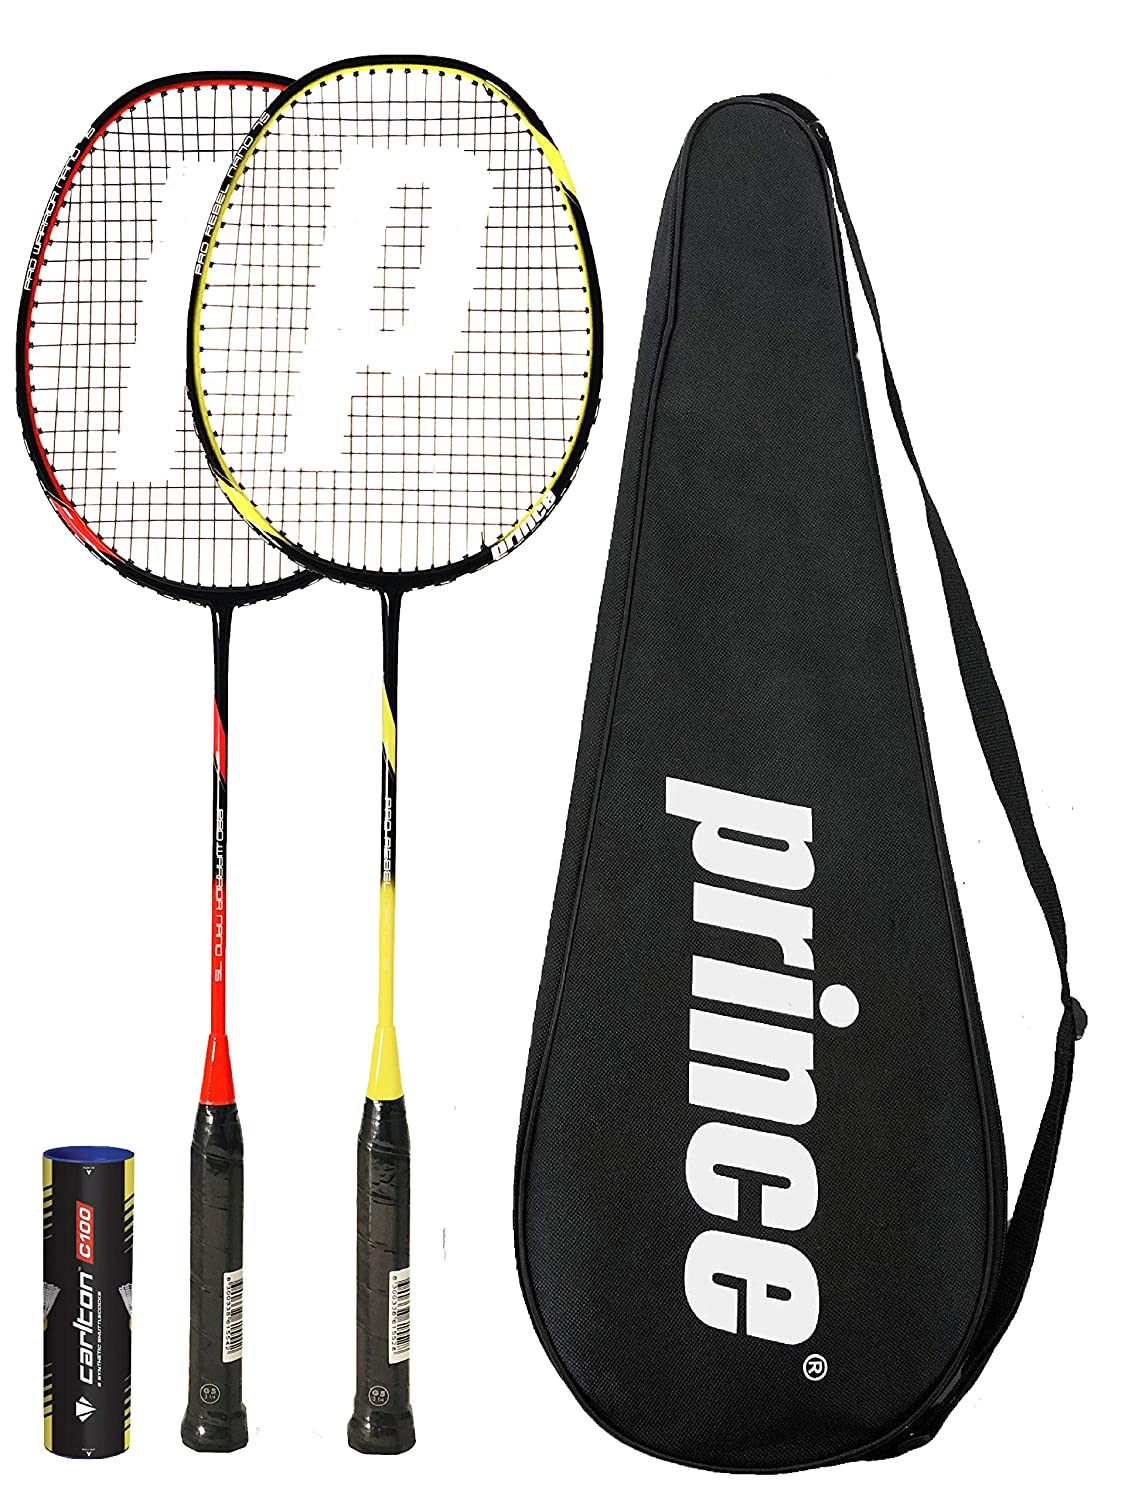 6 Shuttles Various Options Prince PRO Nano 75 Graphite Badminton Racket Series with Full Protective Cover